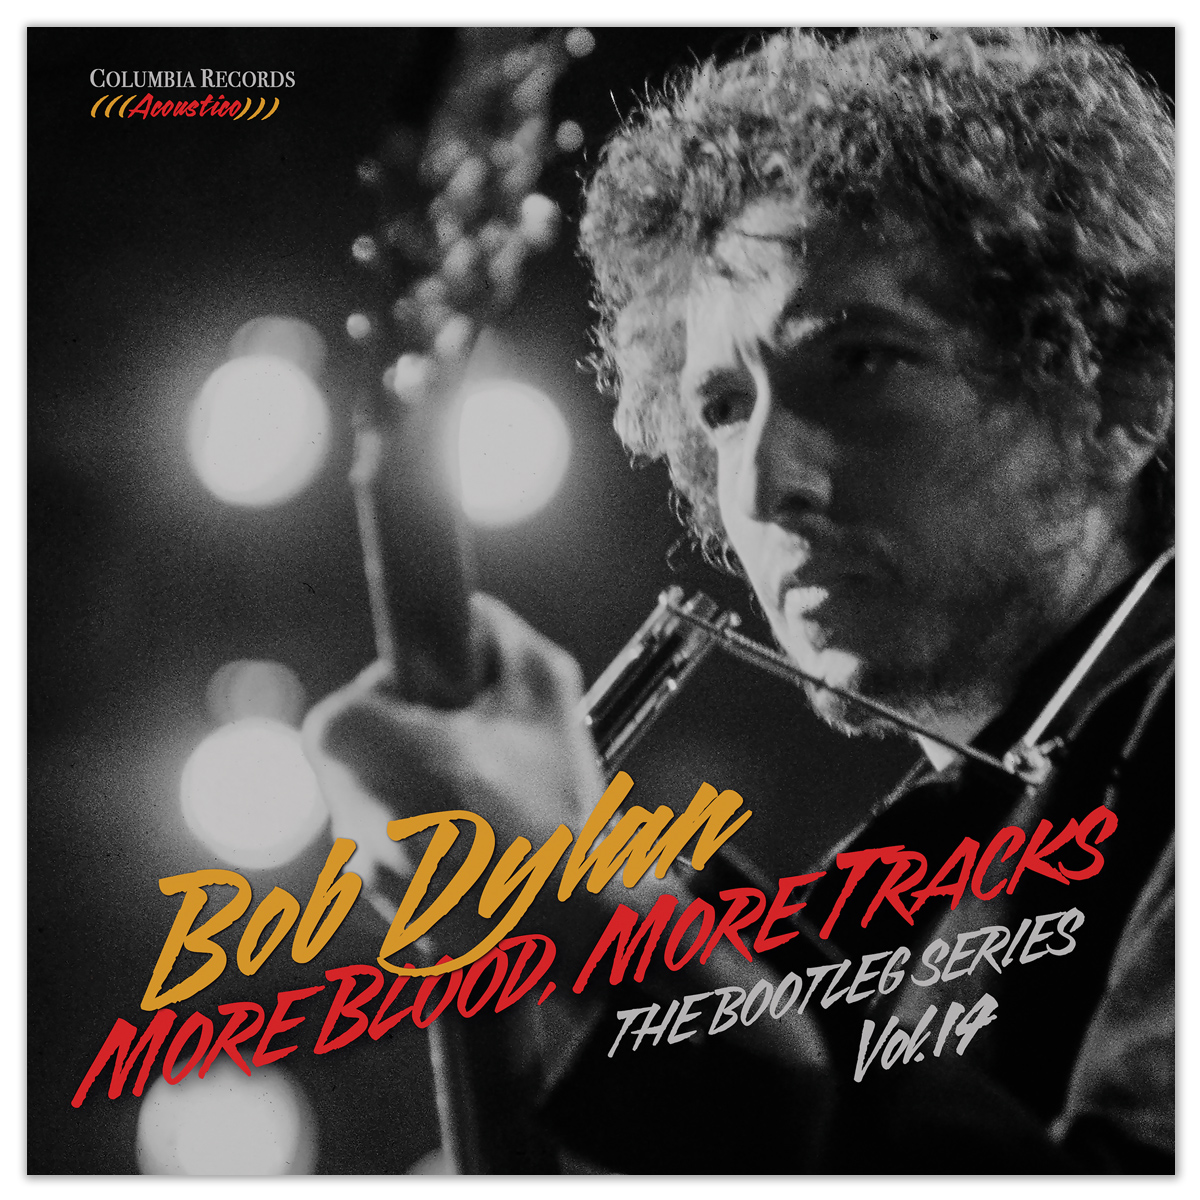 Bob Dylan -  More Blood, More Tracks: The Bootleg Series Vol. 14 CD